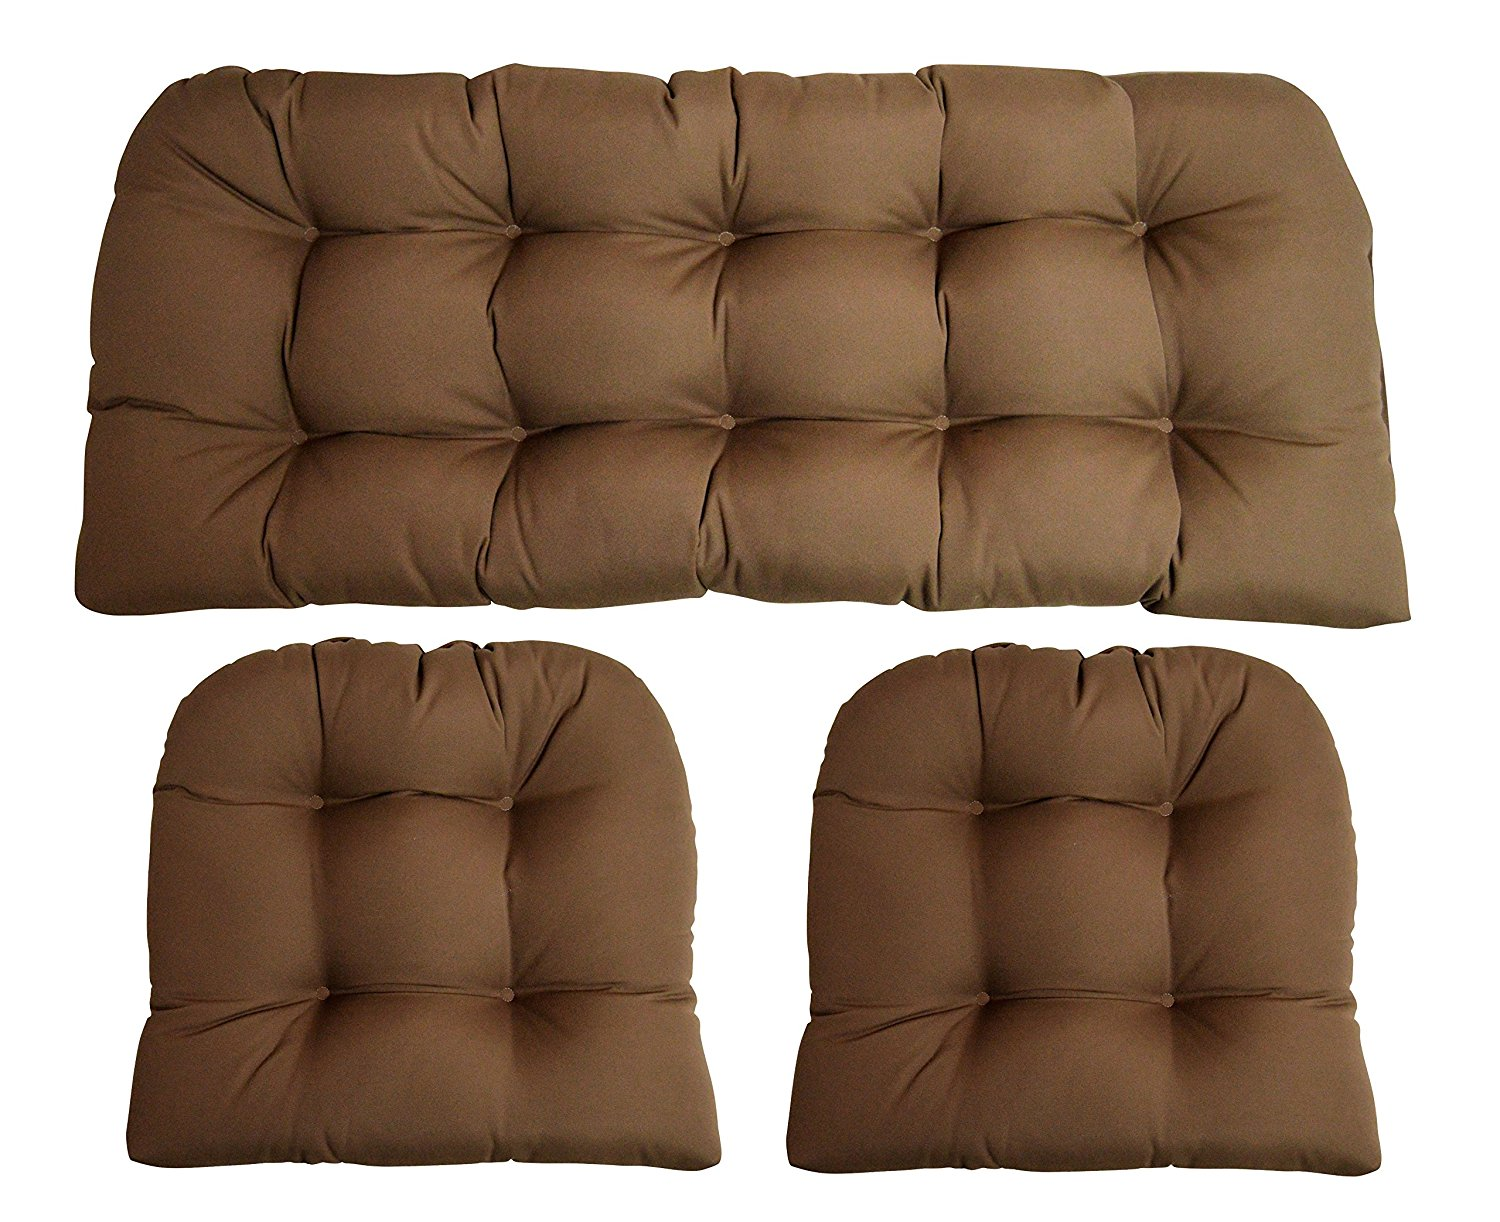 Sunbrella Canvas Cocoa Brown 3 Piece Wicker Cushion Set - Indoor / Outdoor Wicker Loveseat Settee & 2 Matching Chair Cushions